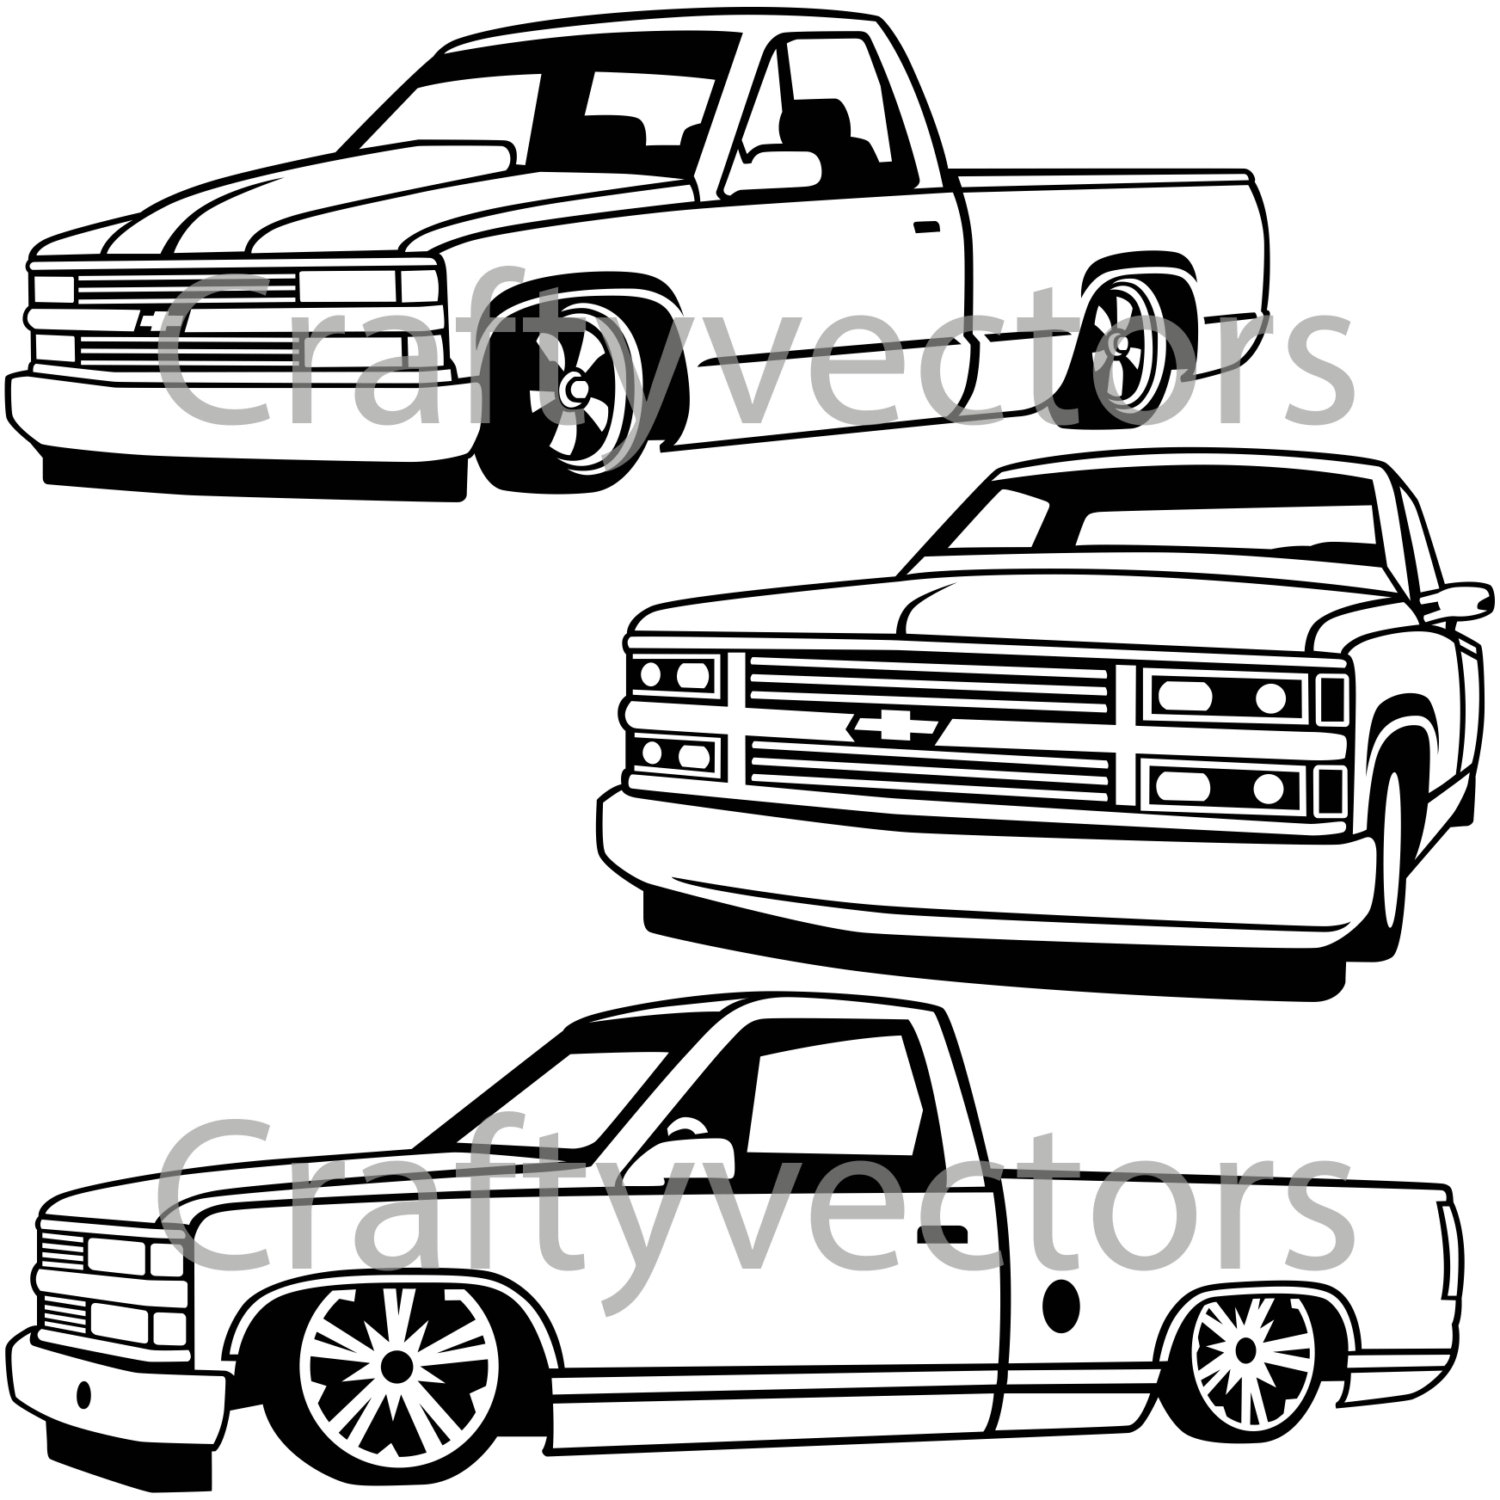 chevy drawing at getdrawings free for personal use chevy Chevy C10 Traction Bars 1500x1500 chevy truck drawing how to draw a chevy silverado drawingforall